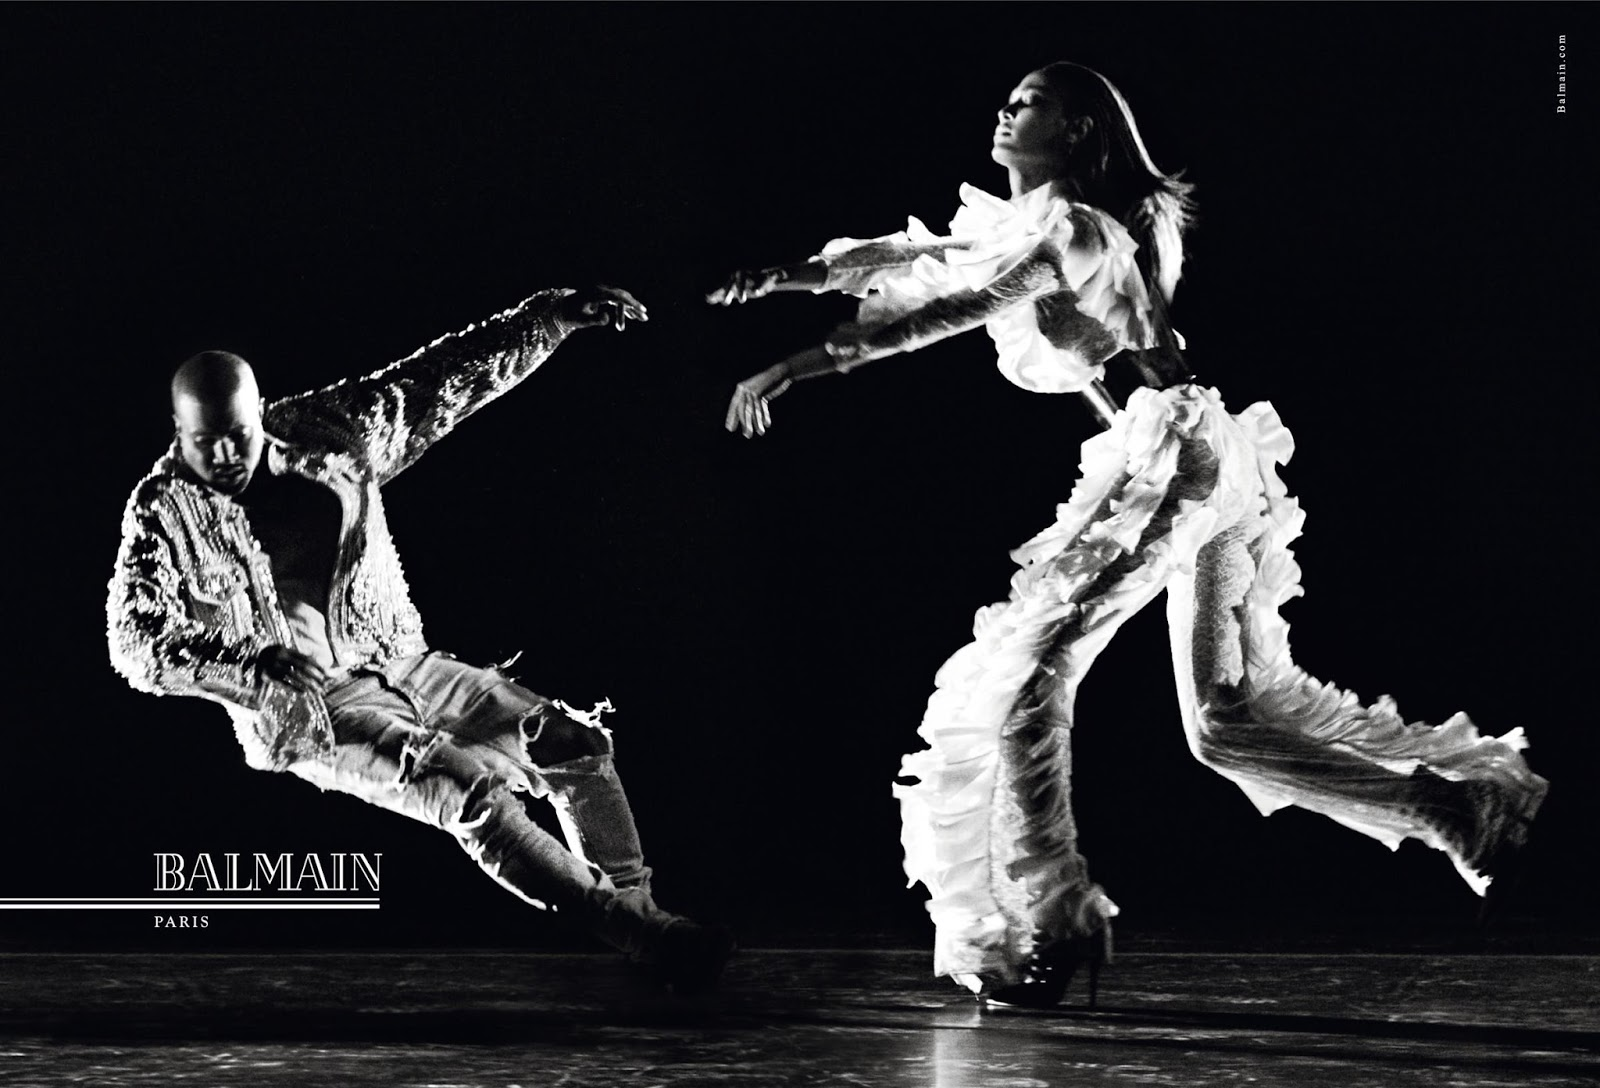 First Look: Kanye West & Joan Smalls for Balmain Autumn/Winter 2016 Campaign